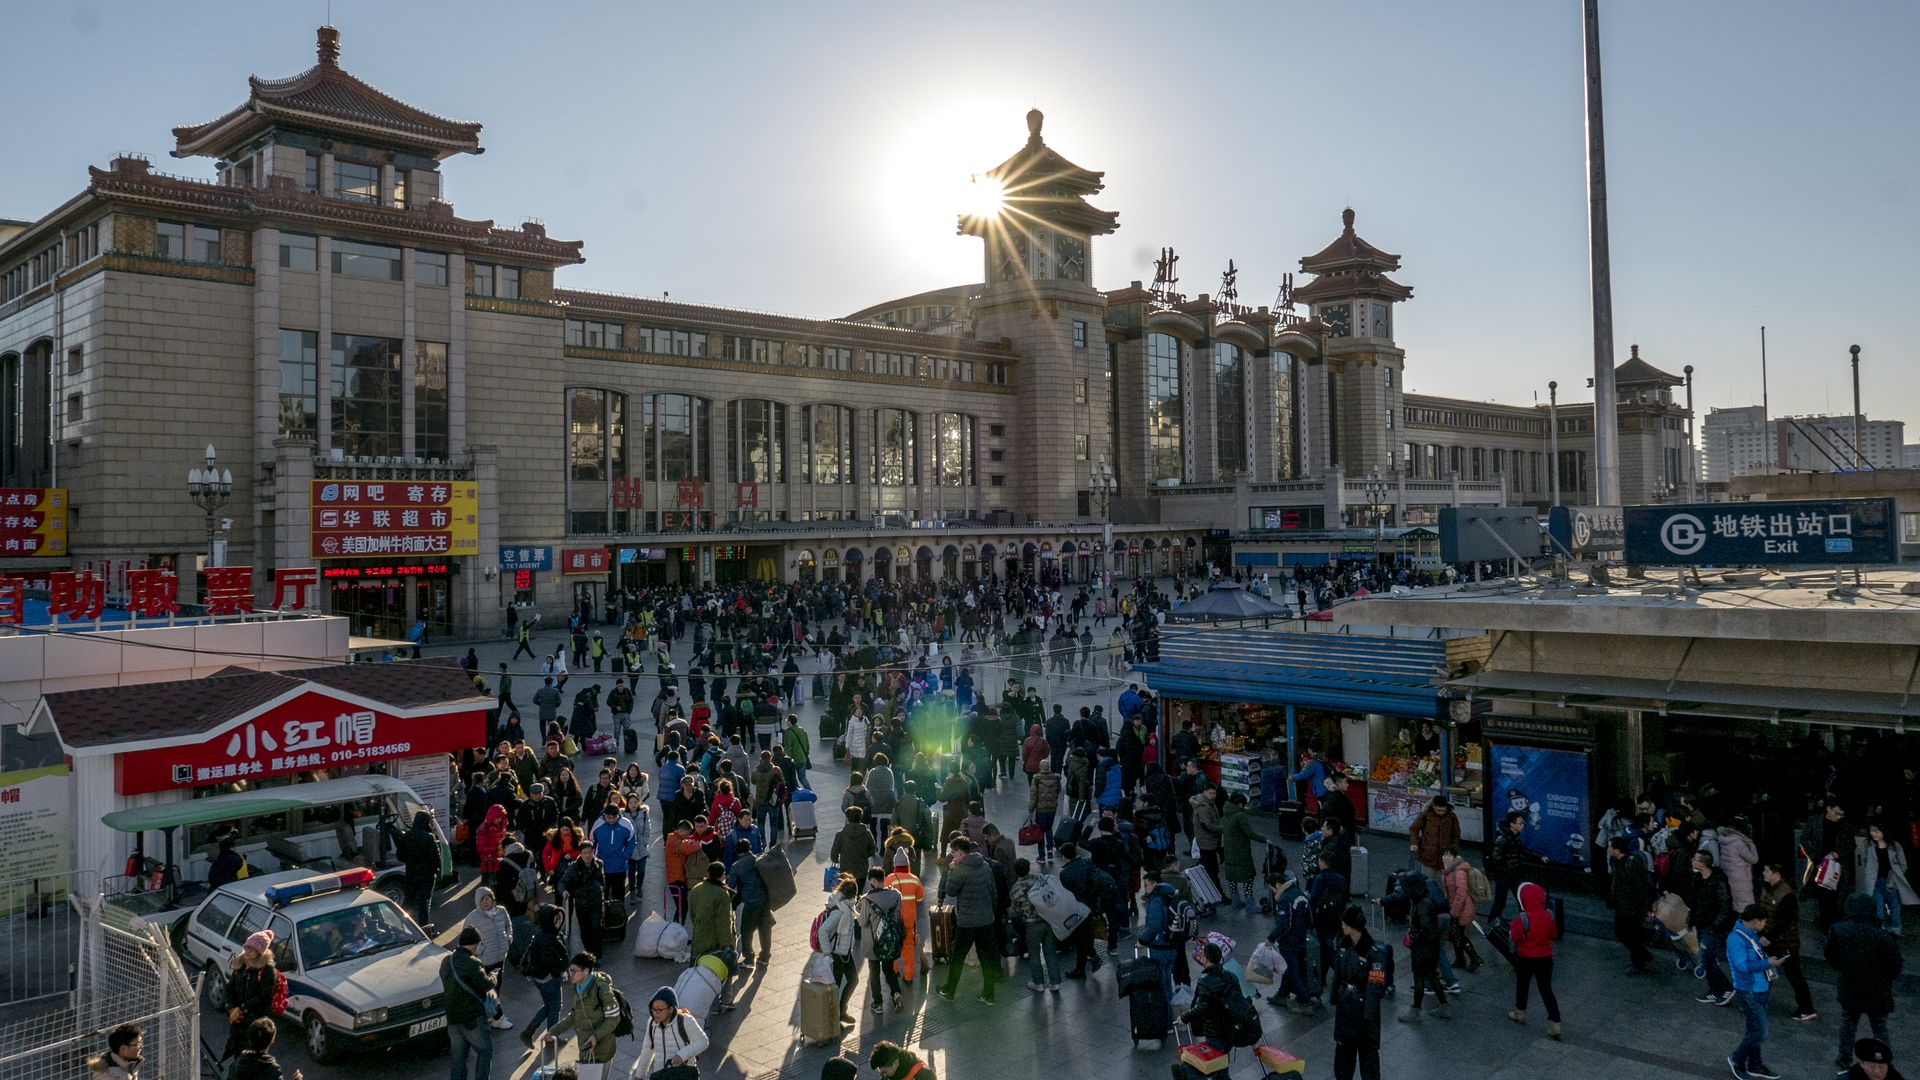 the square of Beijing railway station